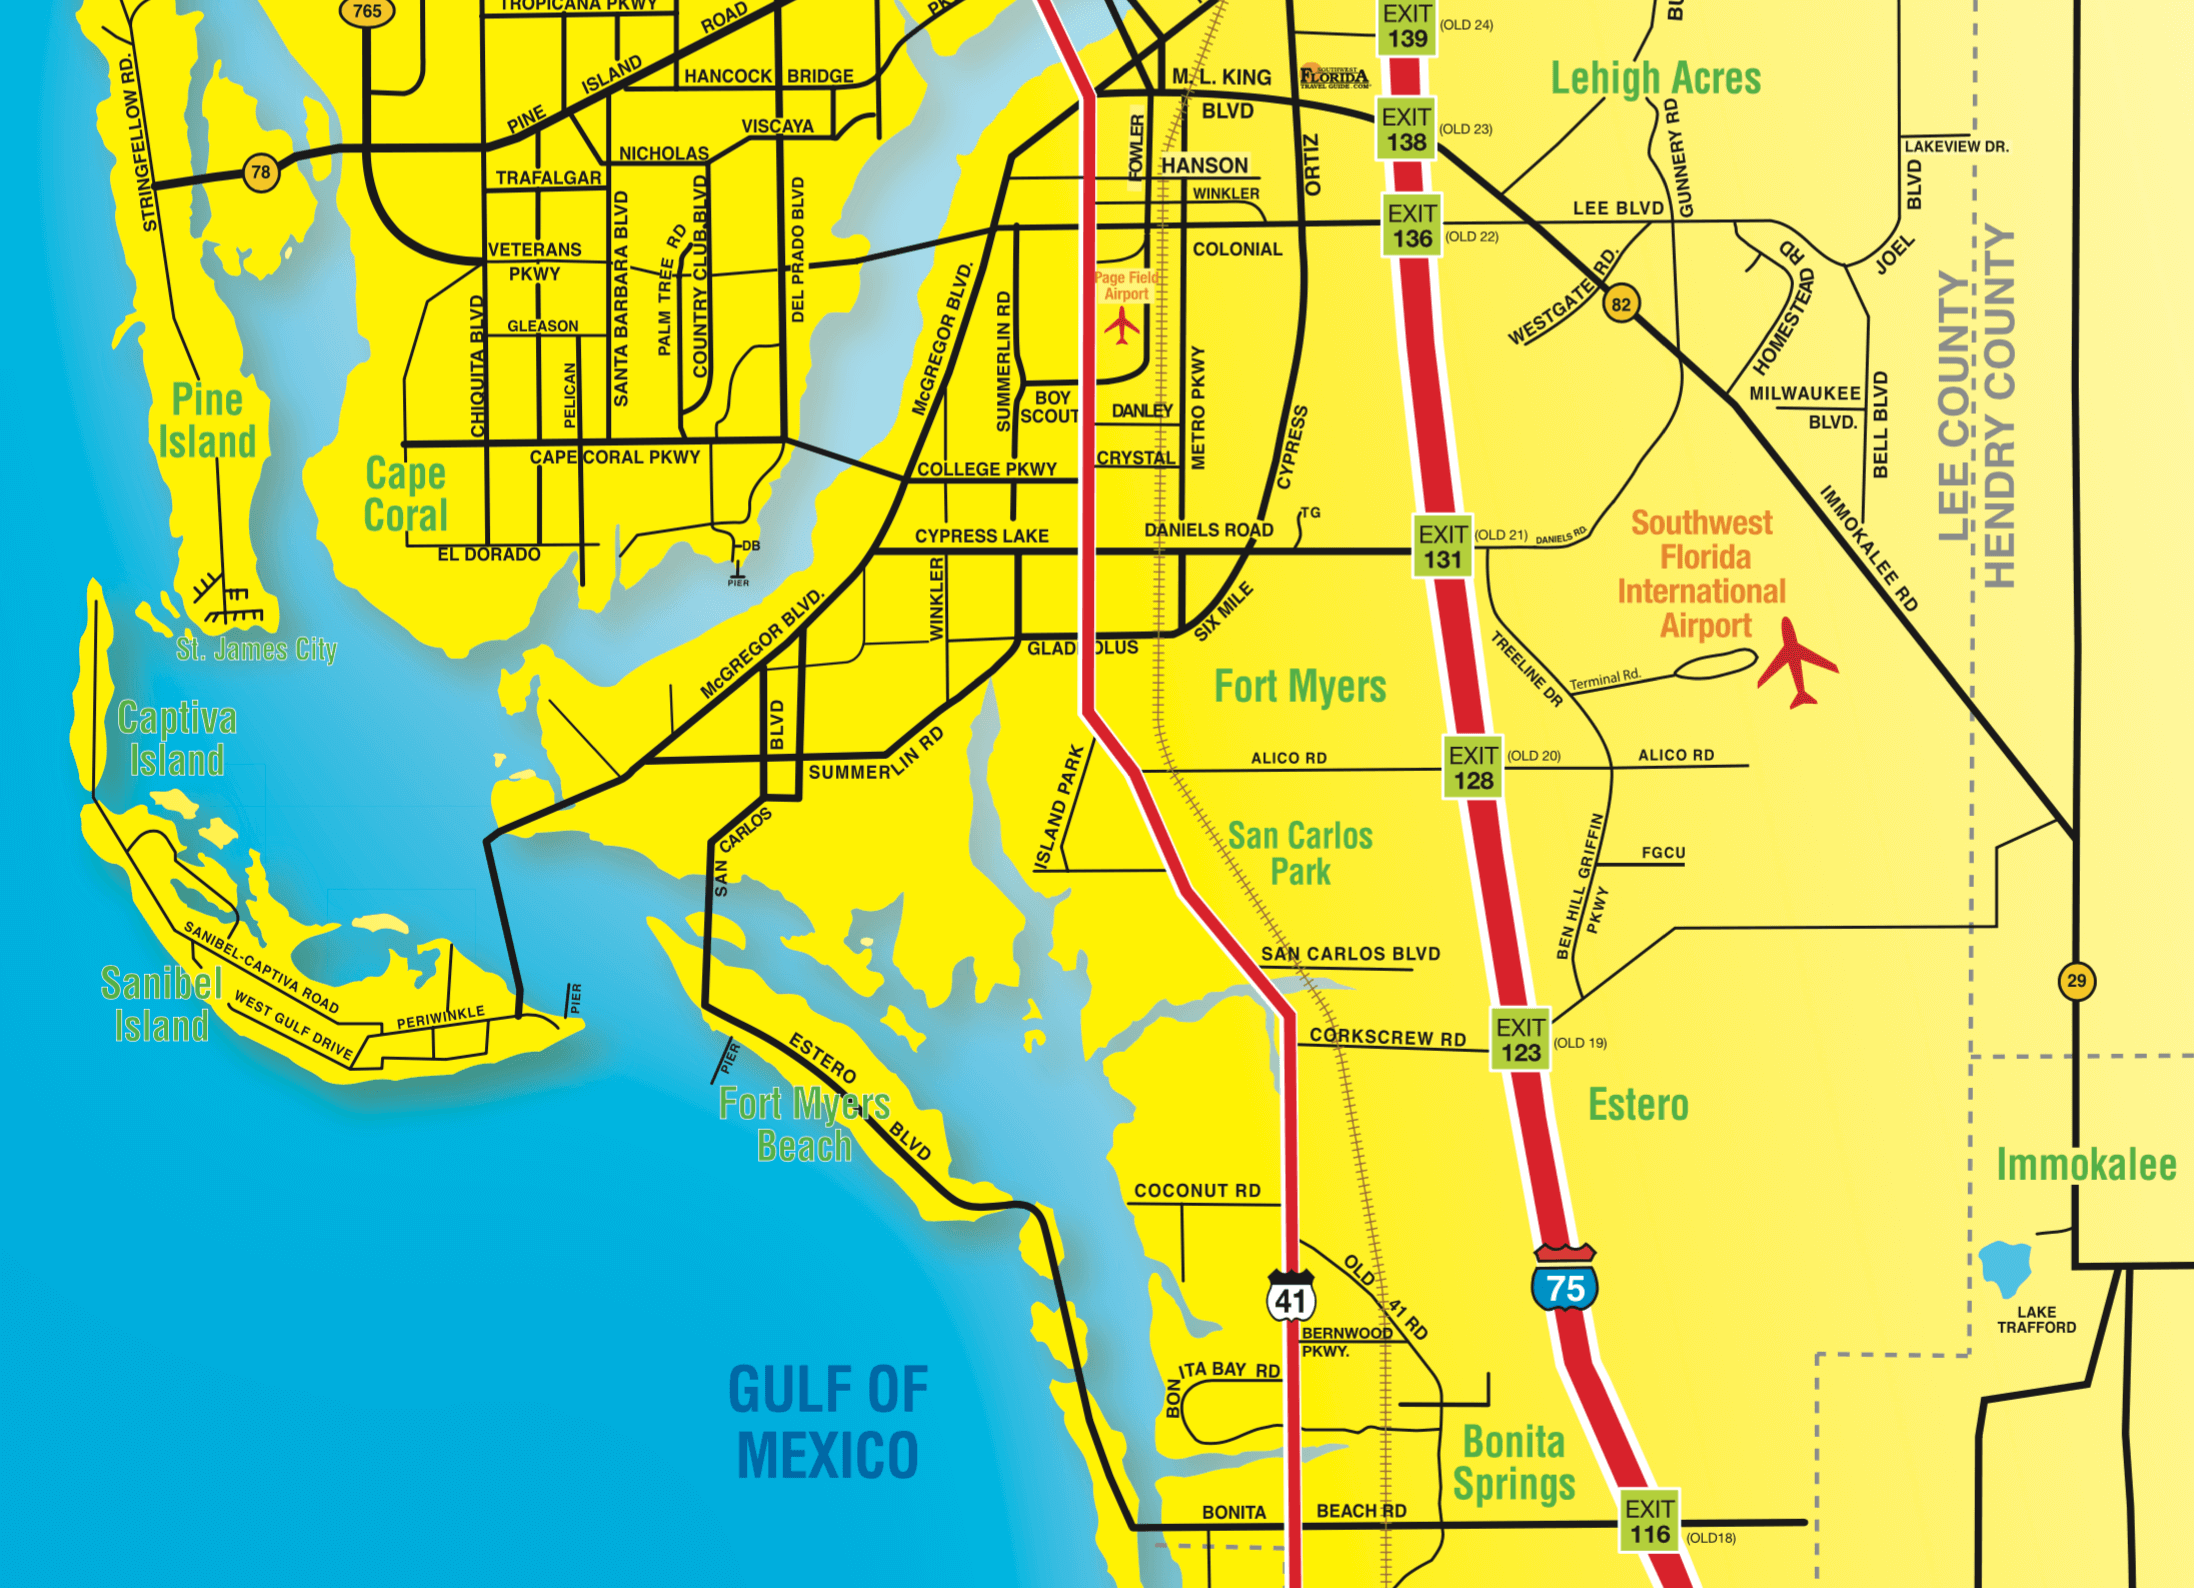 Florida Maps Southwest Florida Travel